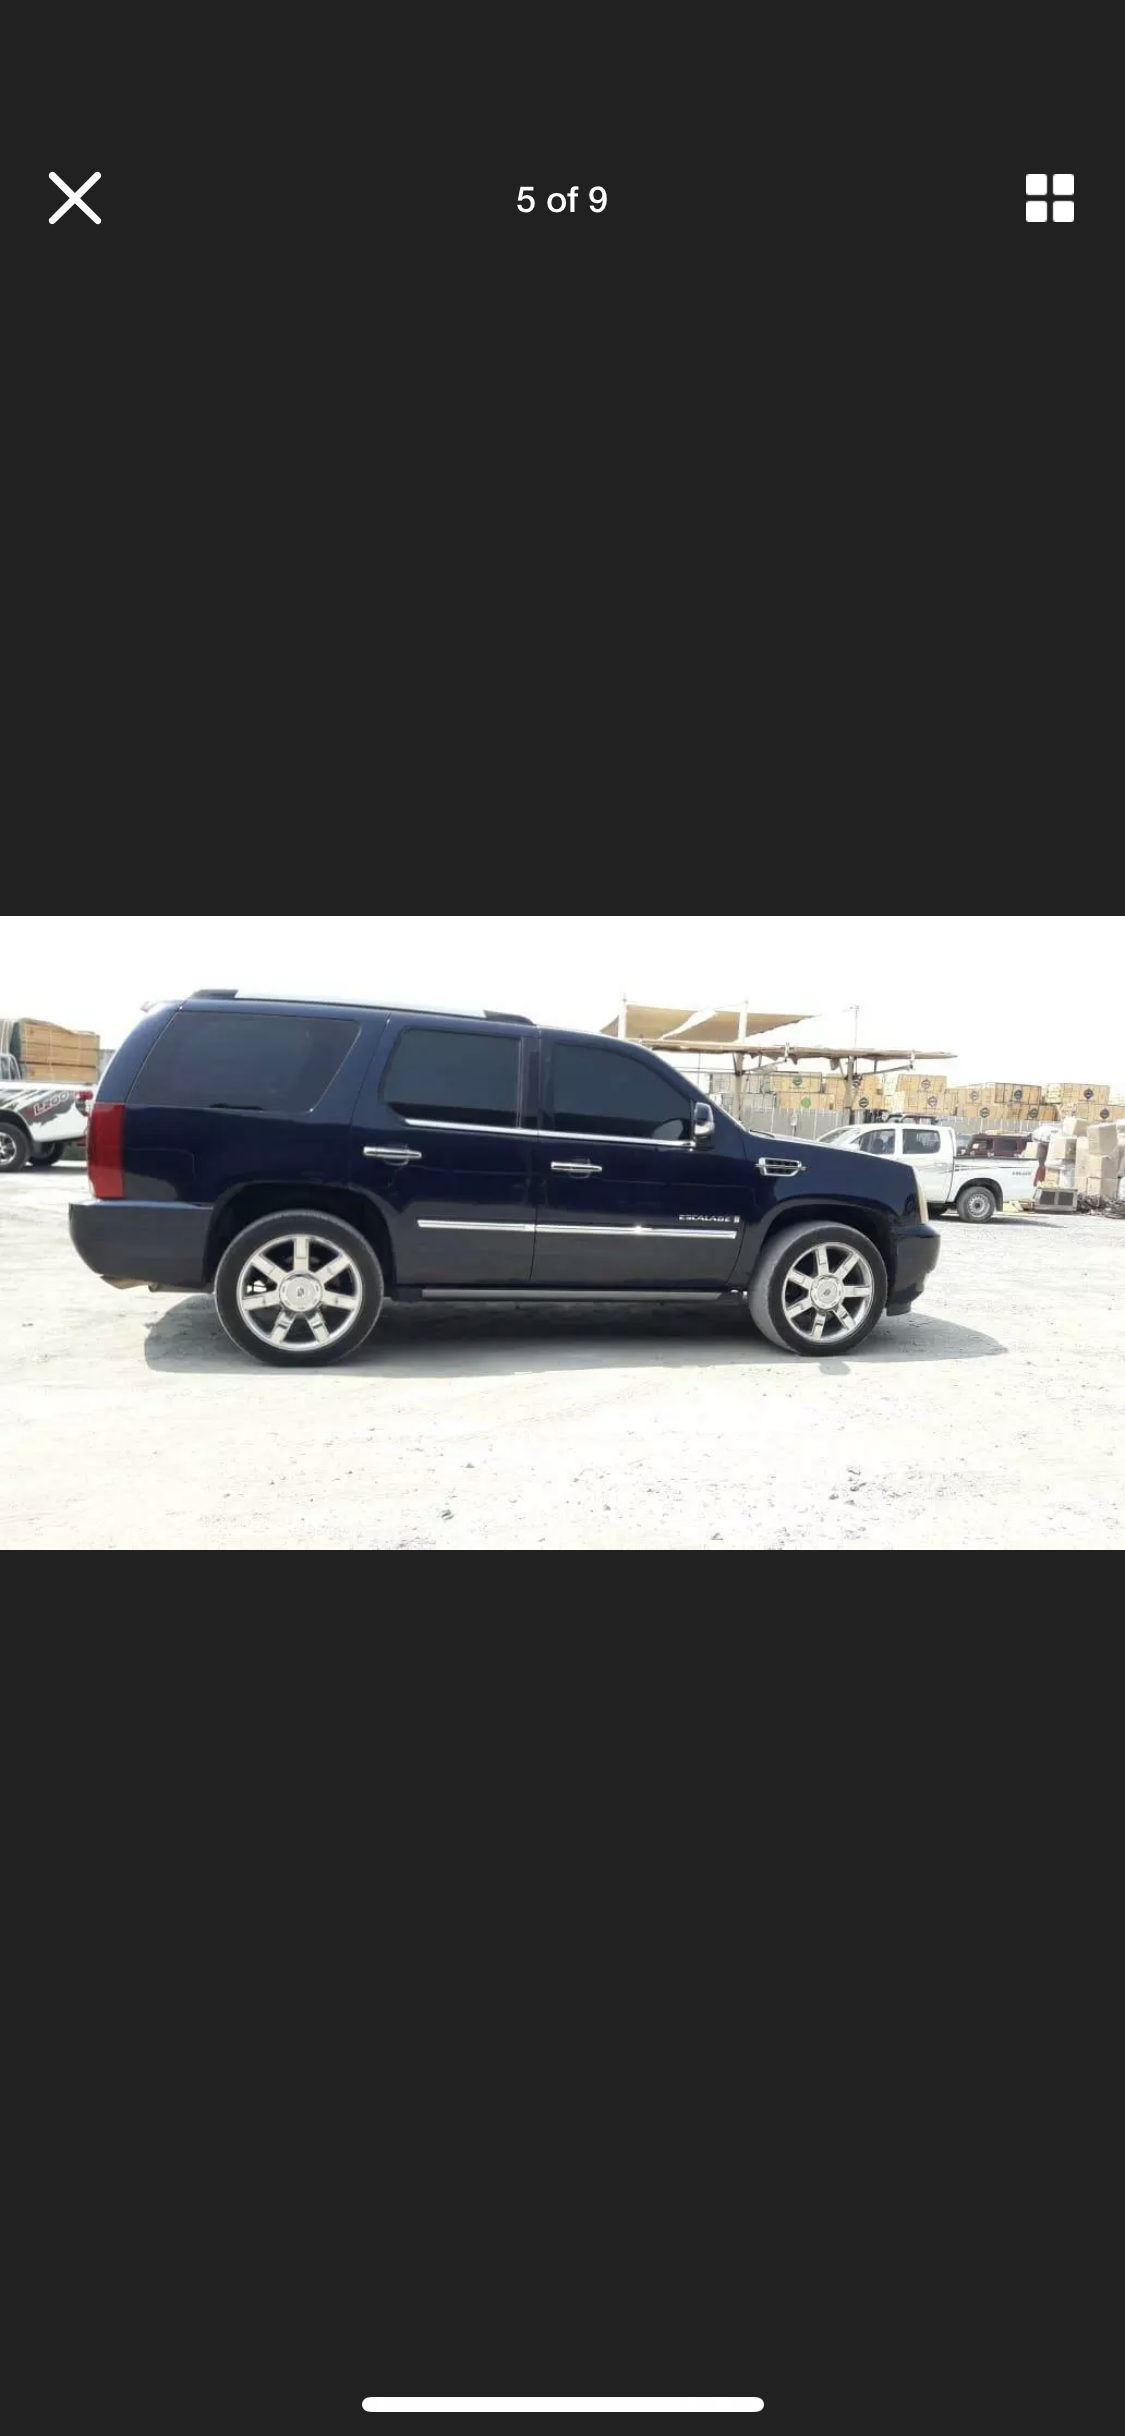 2008 CADILLAC ESCALADE 6.2 LHD LEFT HAND DRIVE FRESH IMPORT LOW M For Sale (picture 3 of 6)